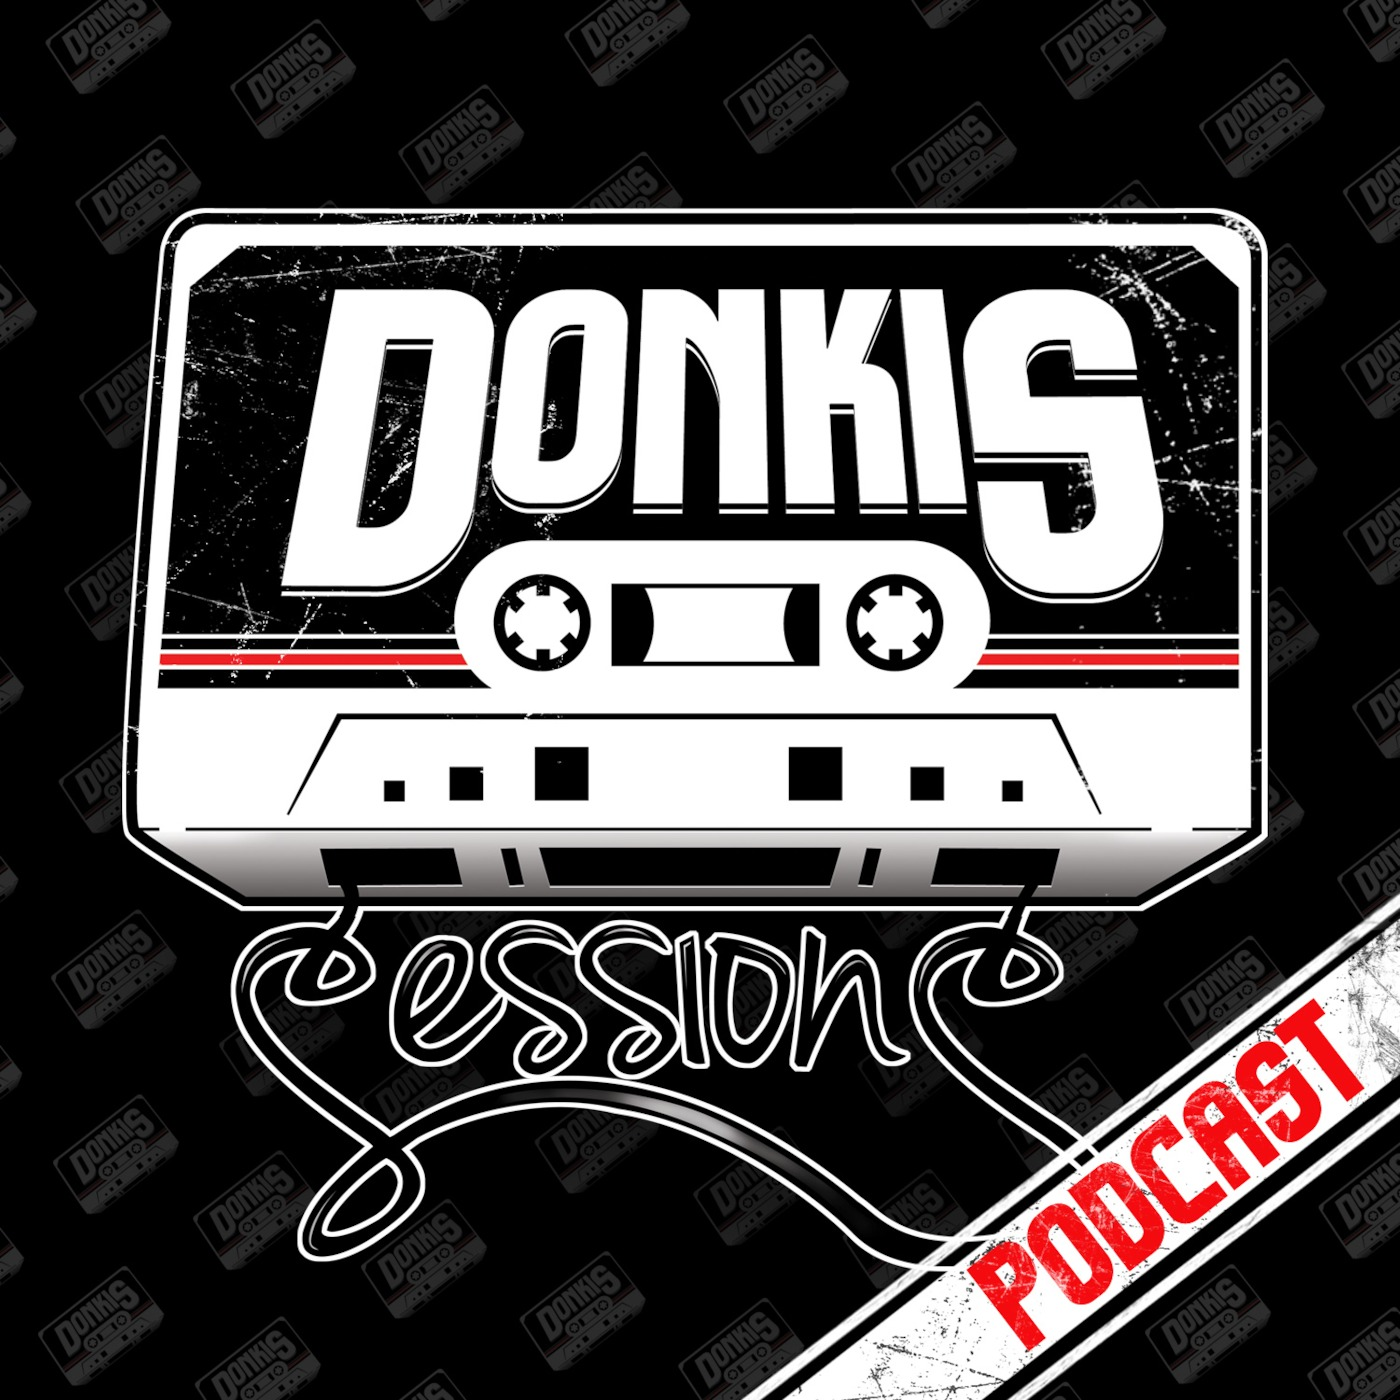 Sessions Podcast w/ Donkis